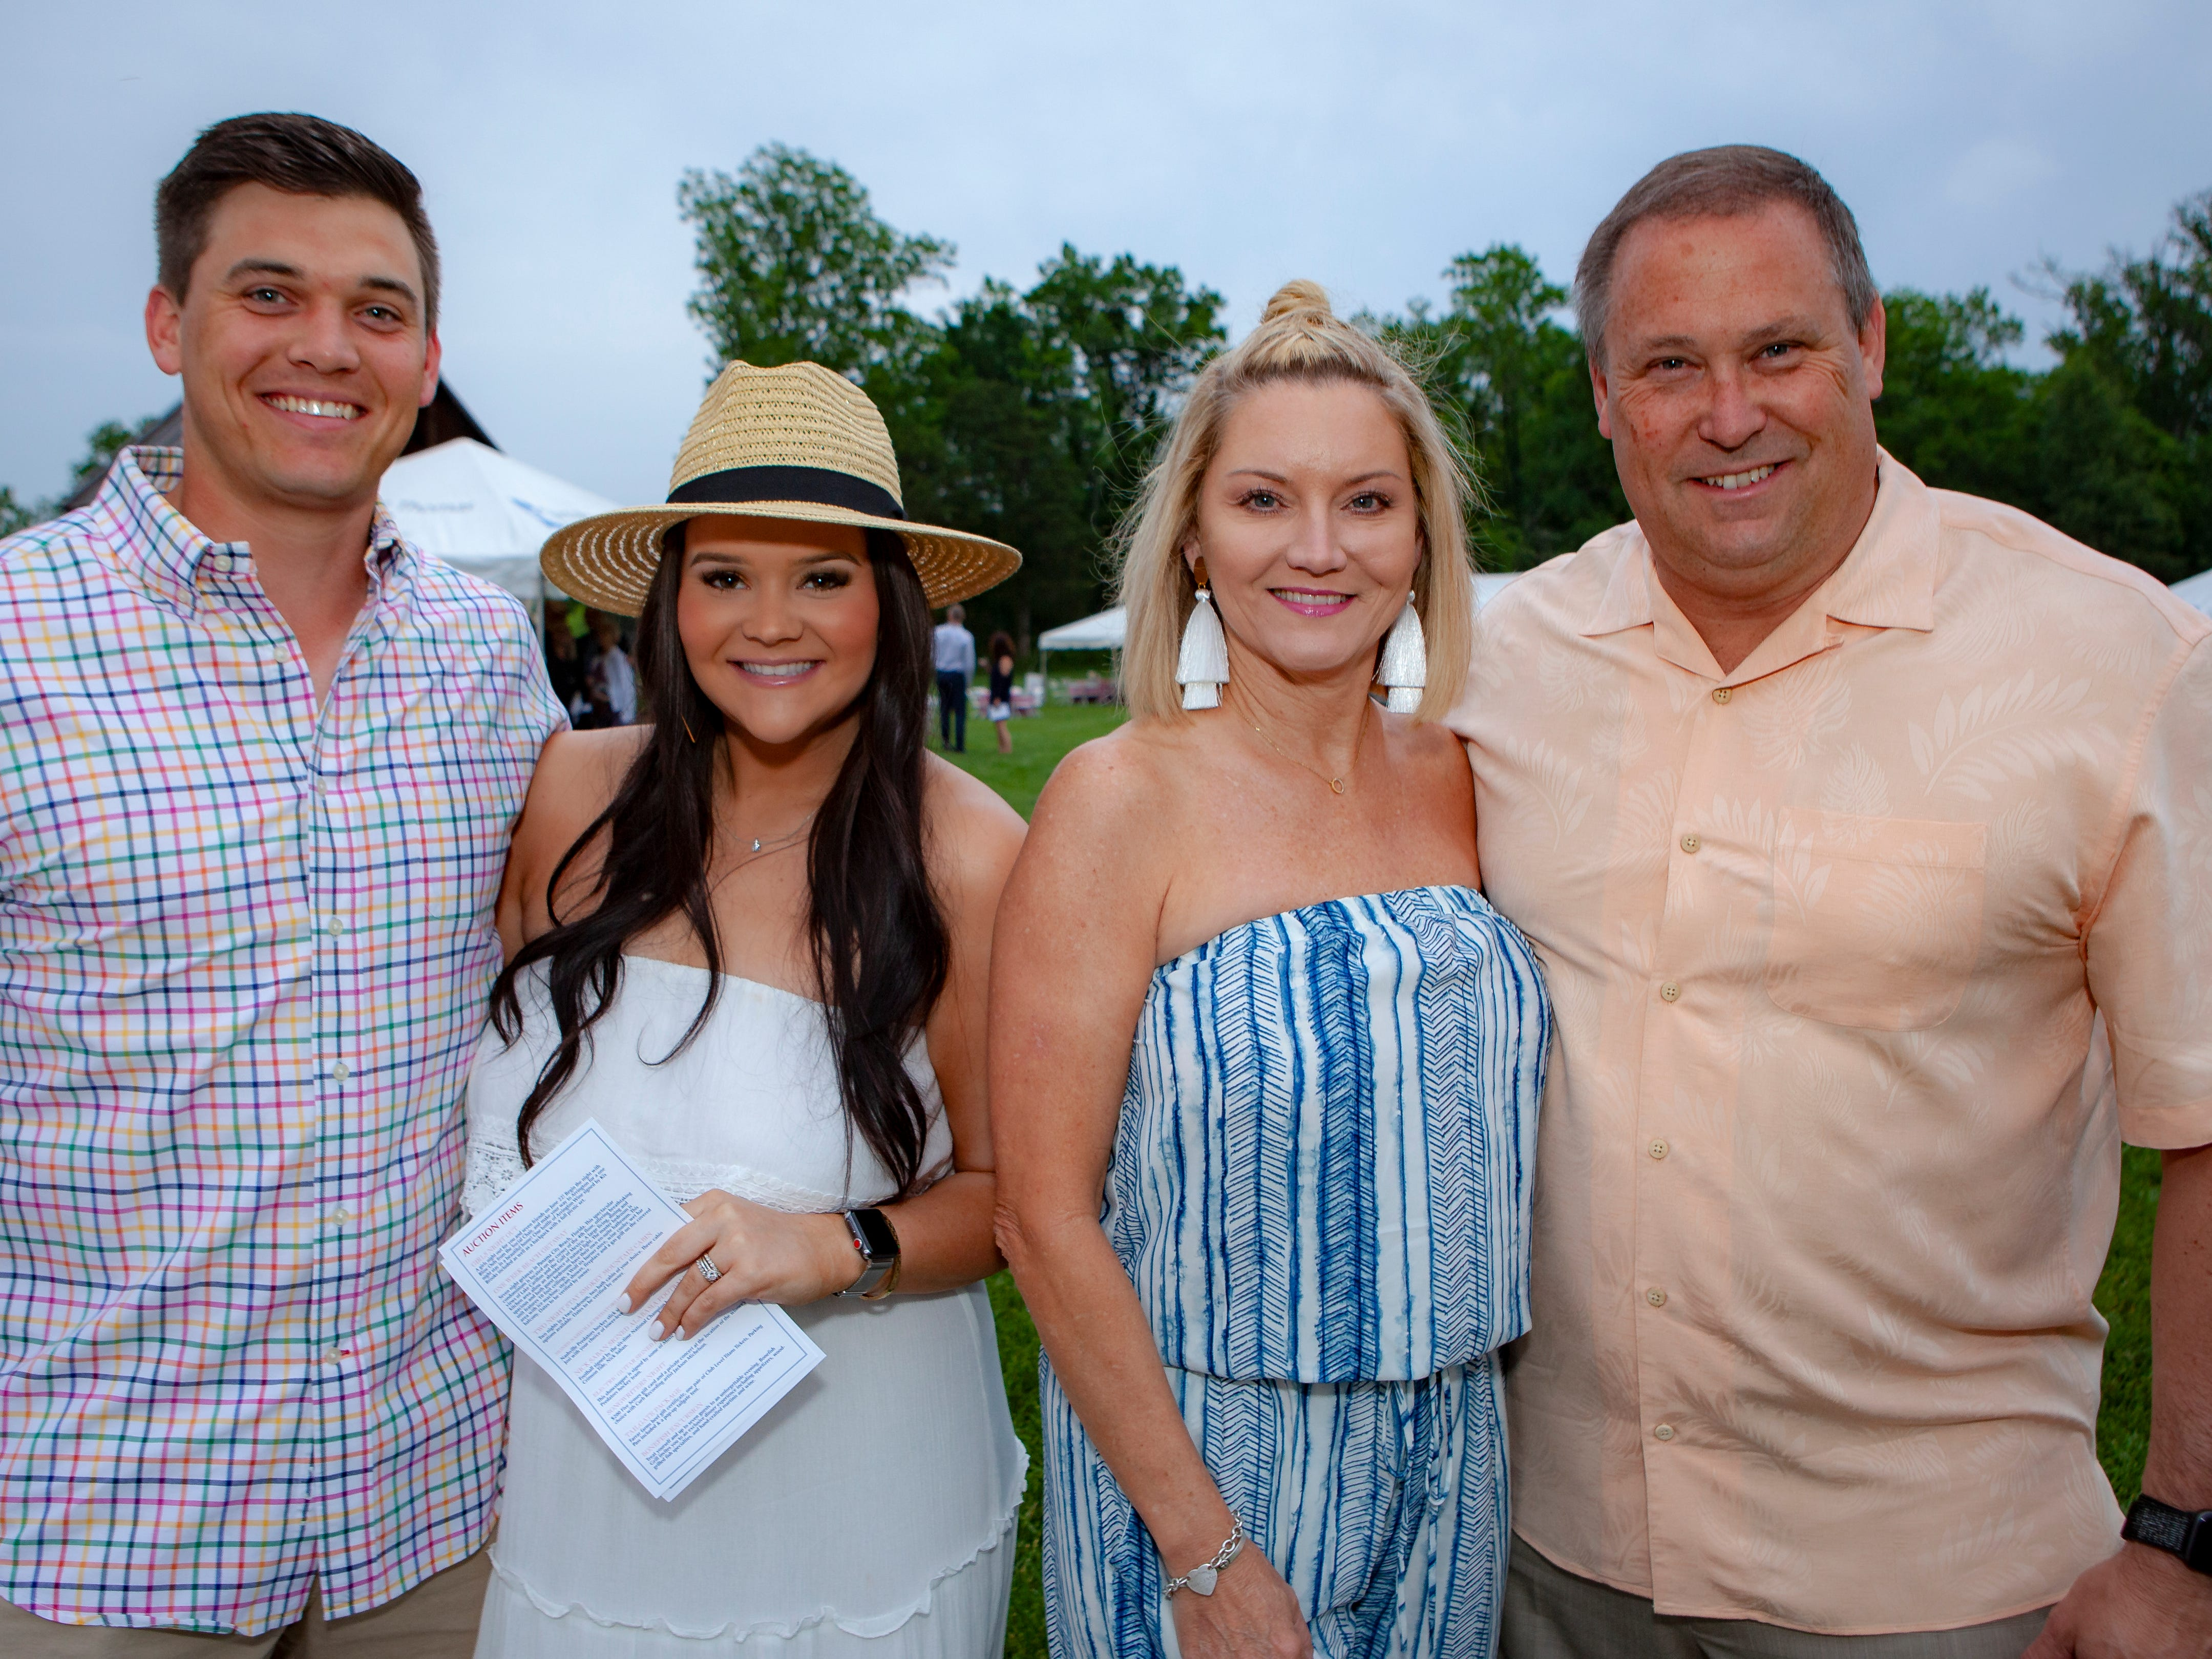 Connor, Megan, Tabatha and Mike Shea enjoyed a Cajun feast under the stars at United Way's Red, White and Bayou, held Friday, May 10, 2019 at the home of Jimmy & Nikkole Aho.